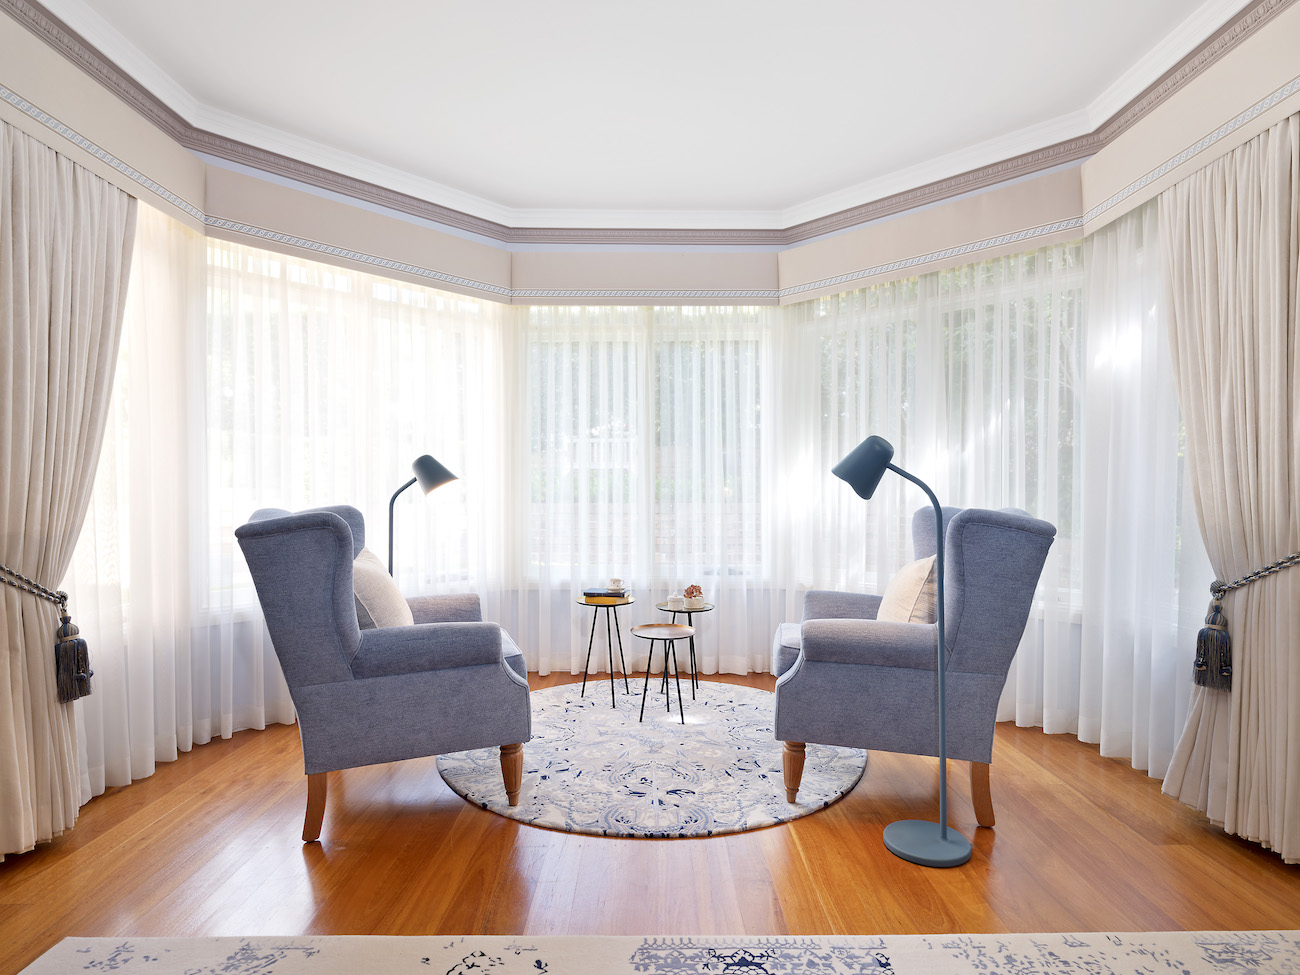 Curtains with decorative pelmets